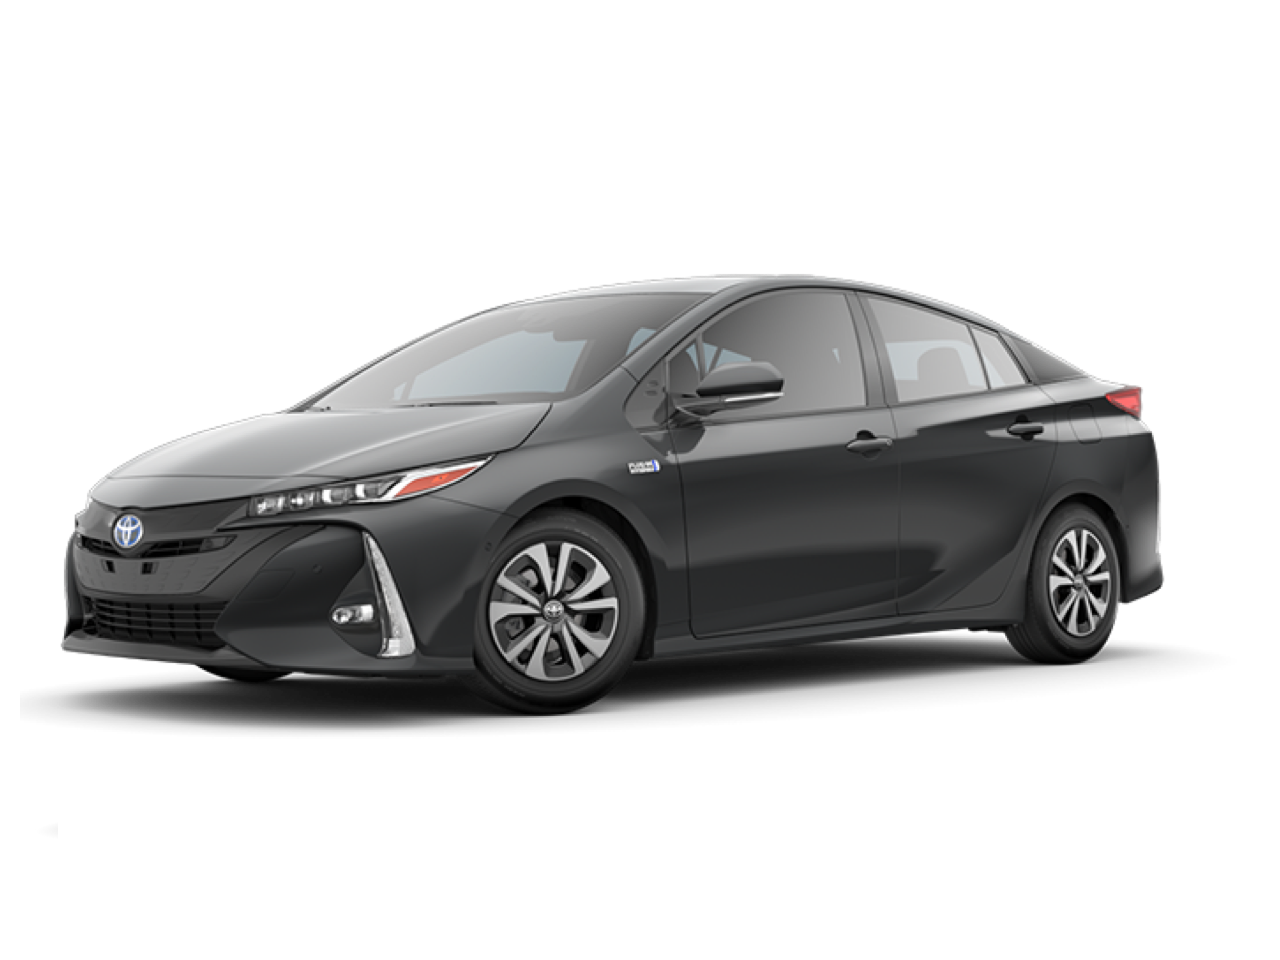 2017 toyota prius prime at roseville toyota serving sacramento folsom and auburn. Black Bedroom Furniture Sets. Home Design Ideas